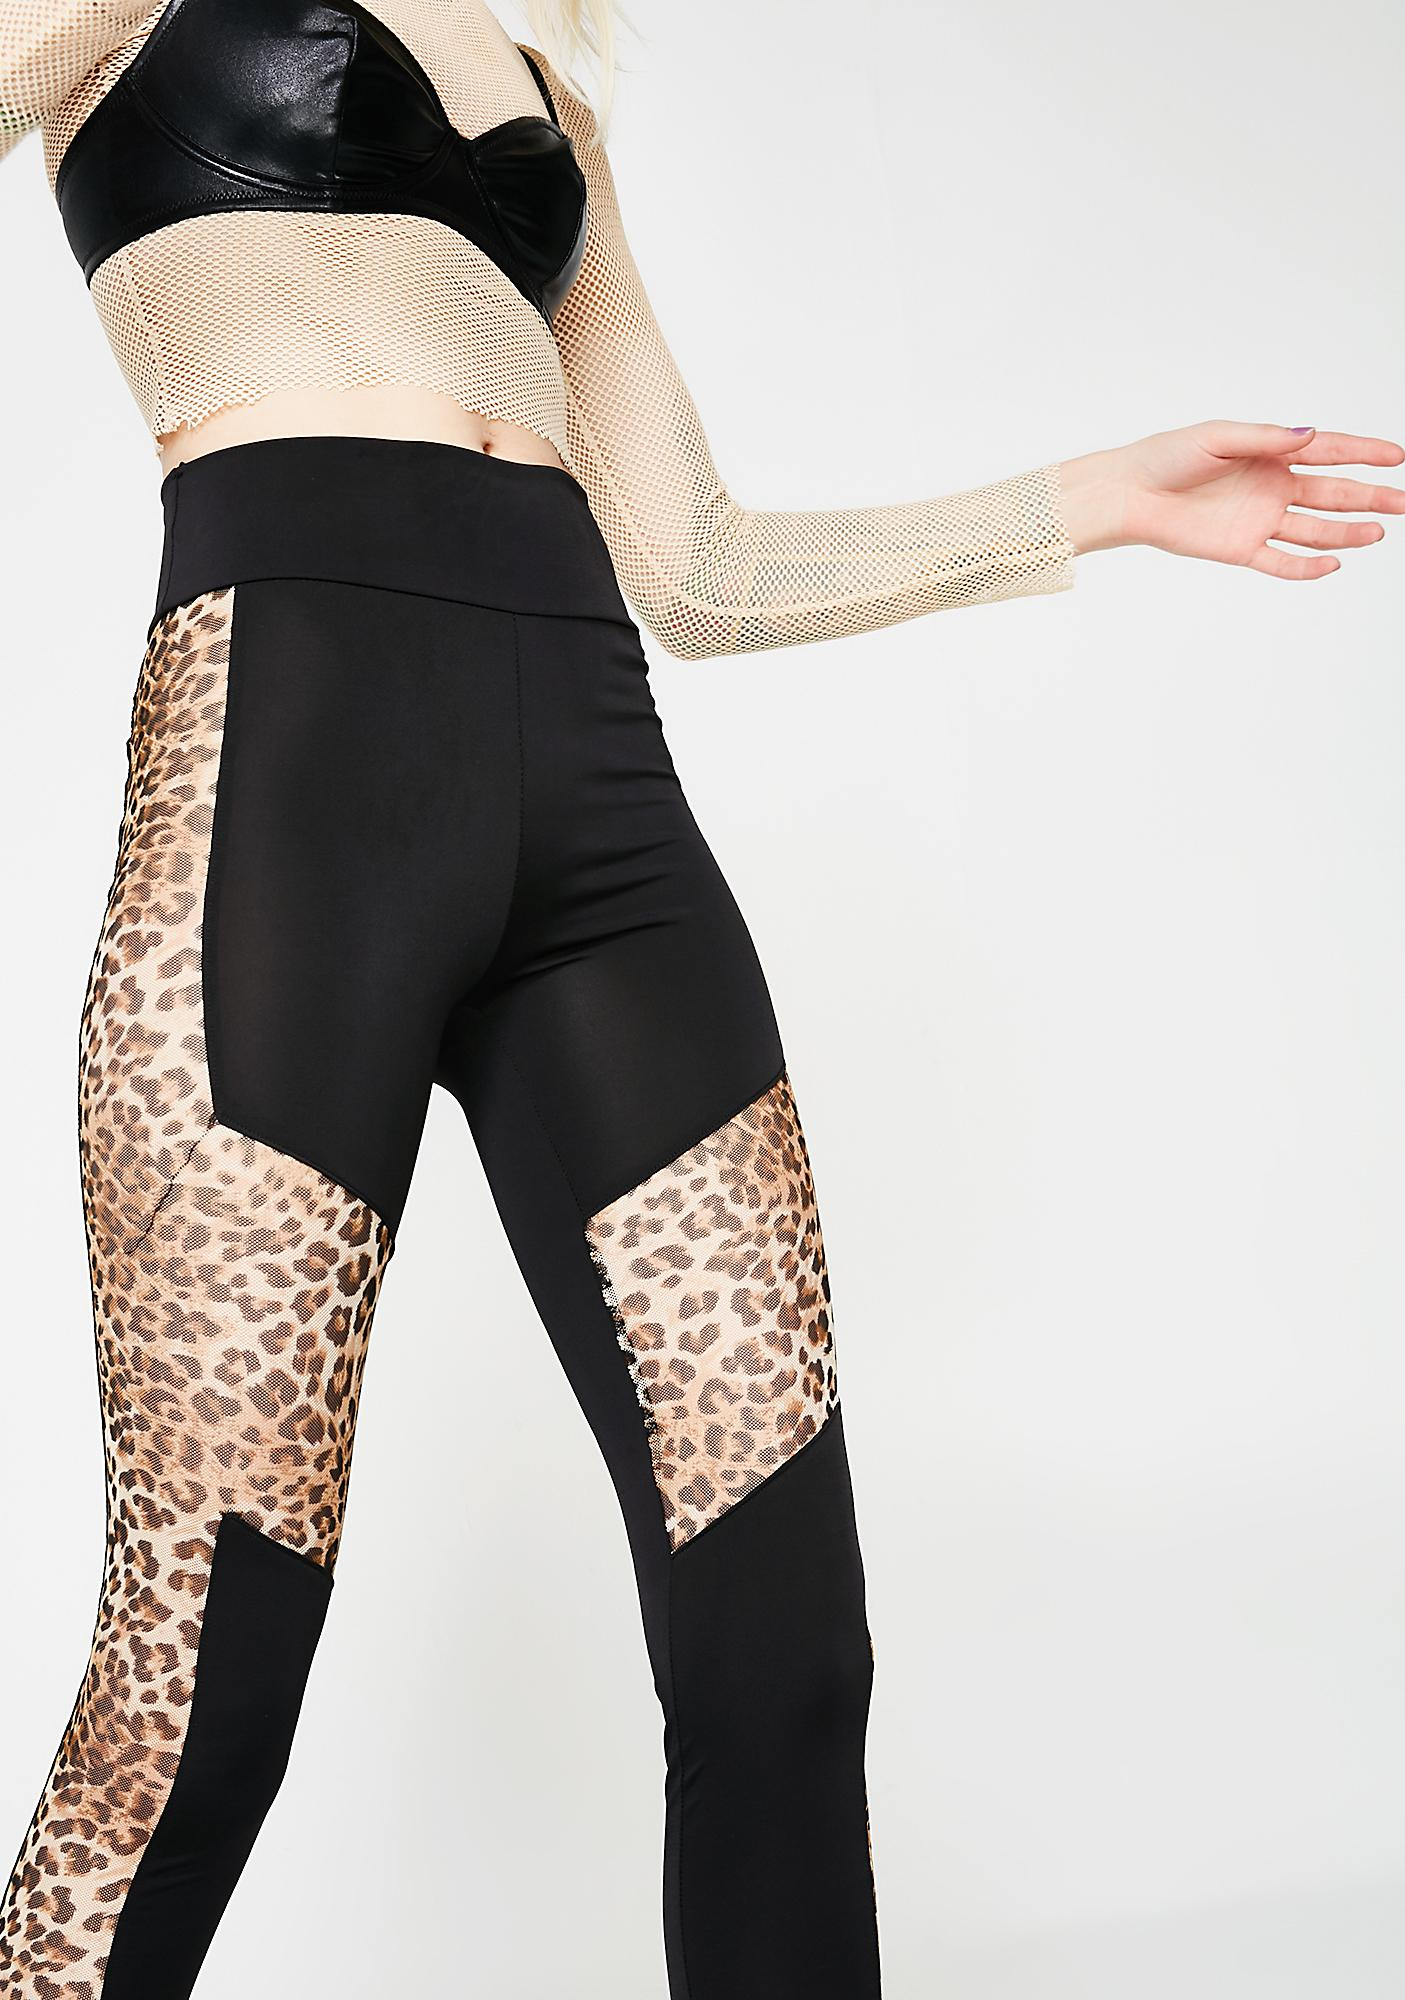 Can't Catch Kitty Leggings